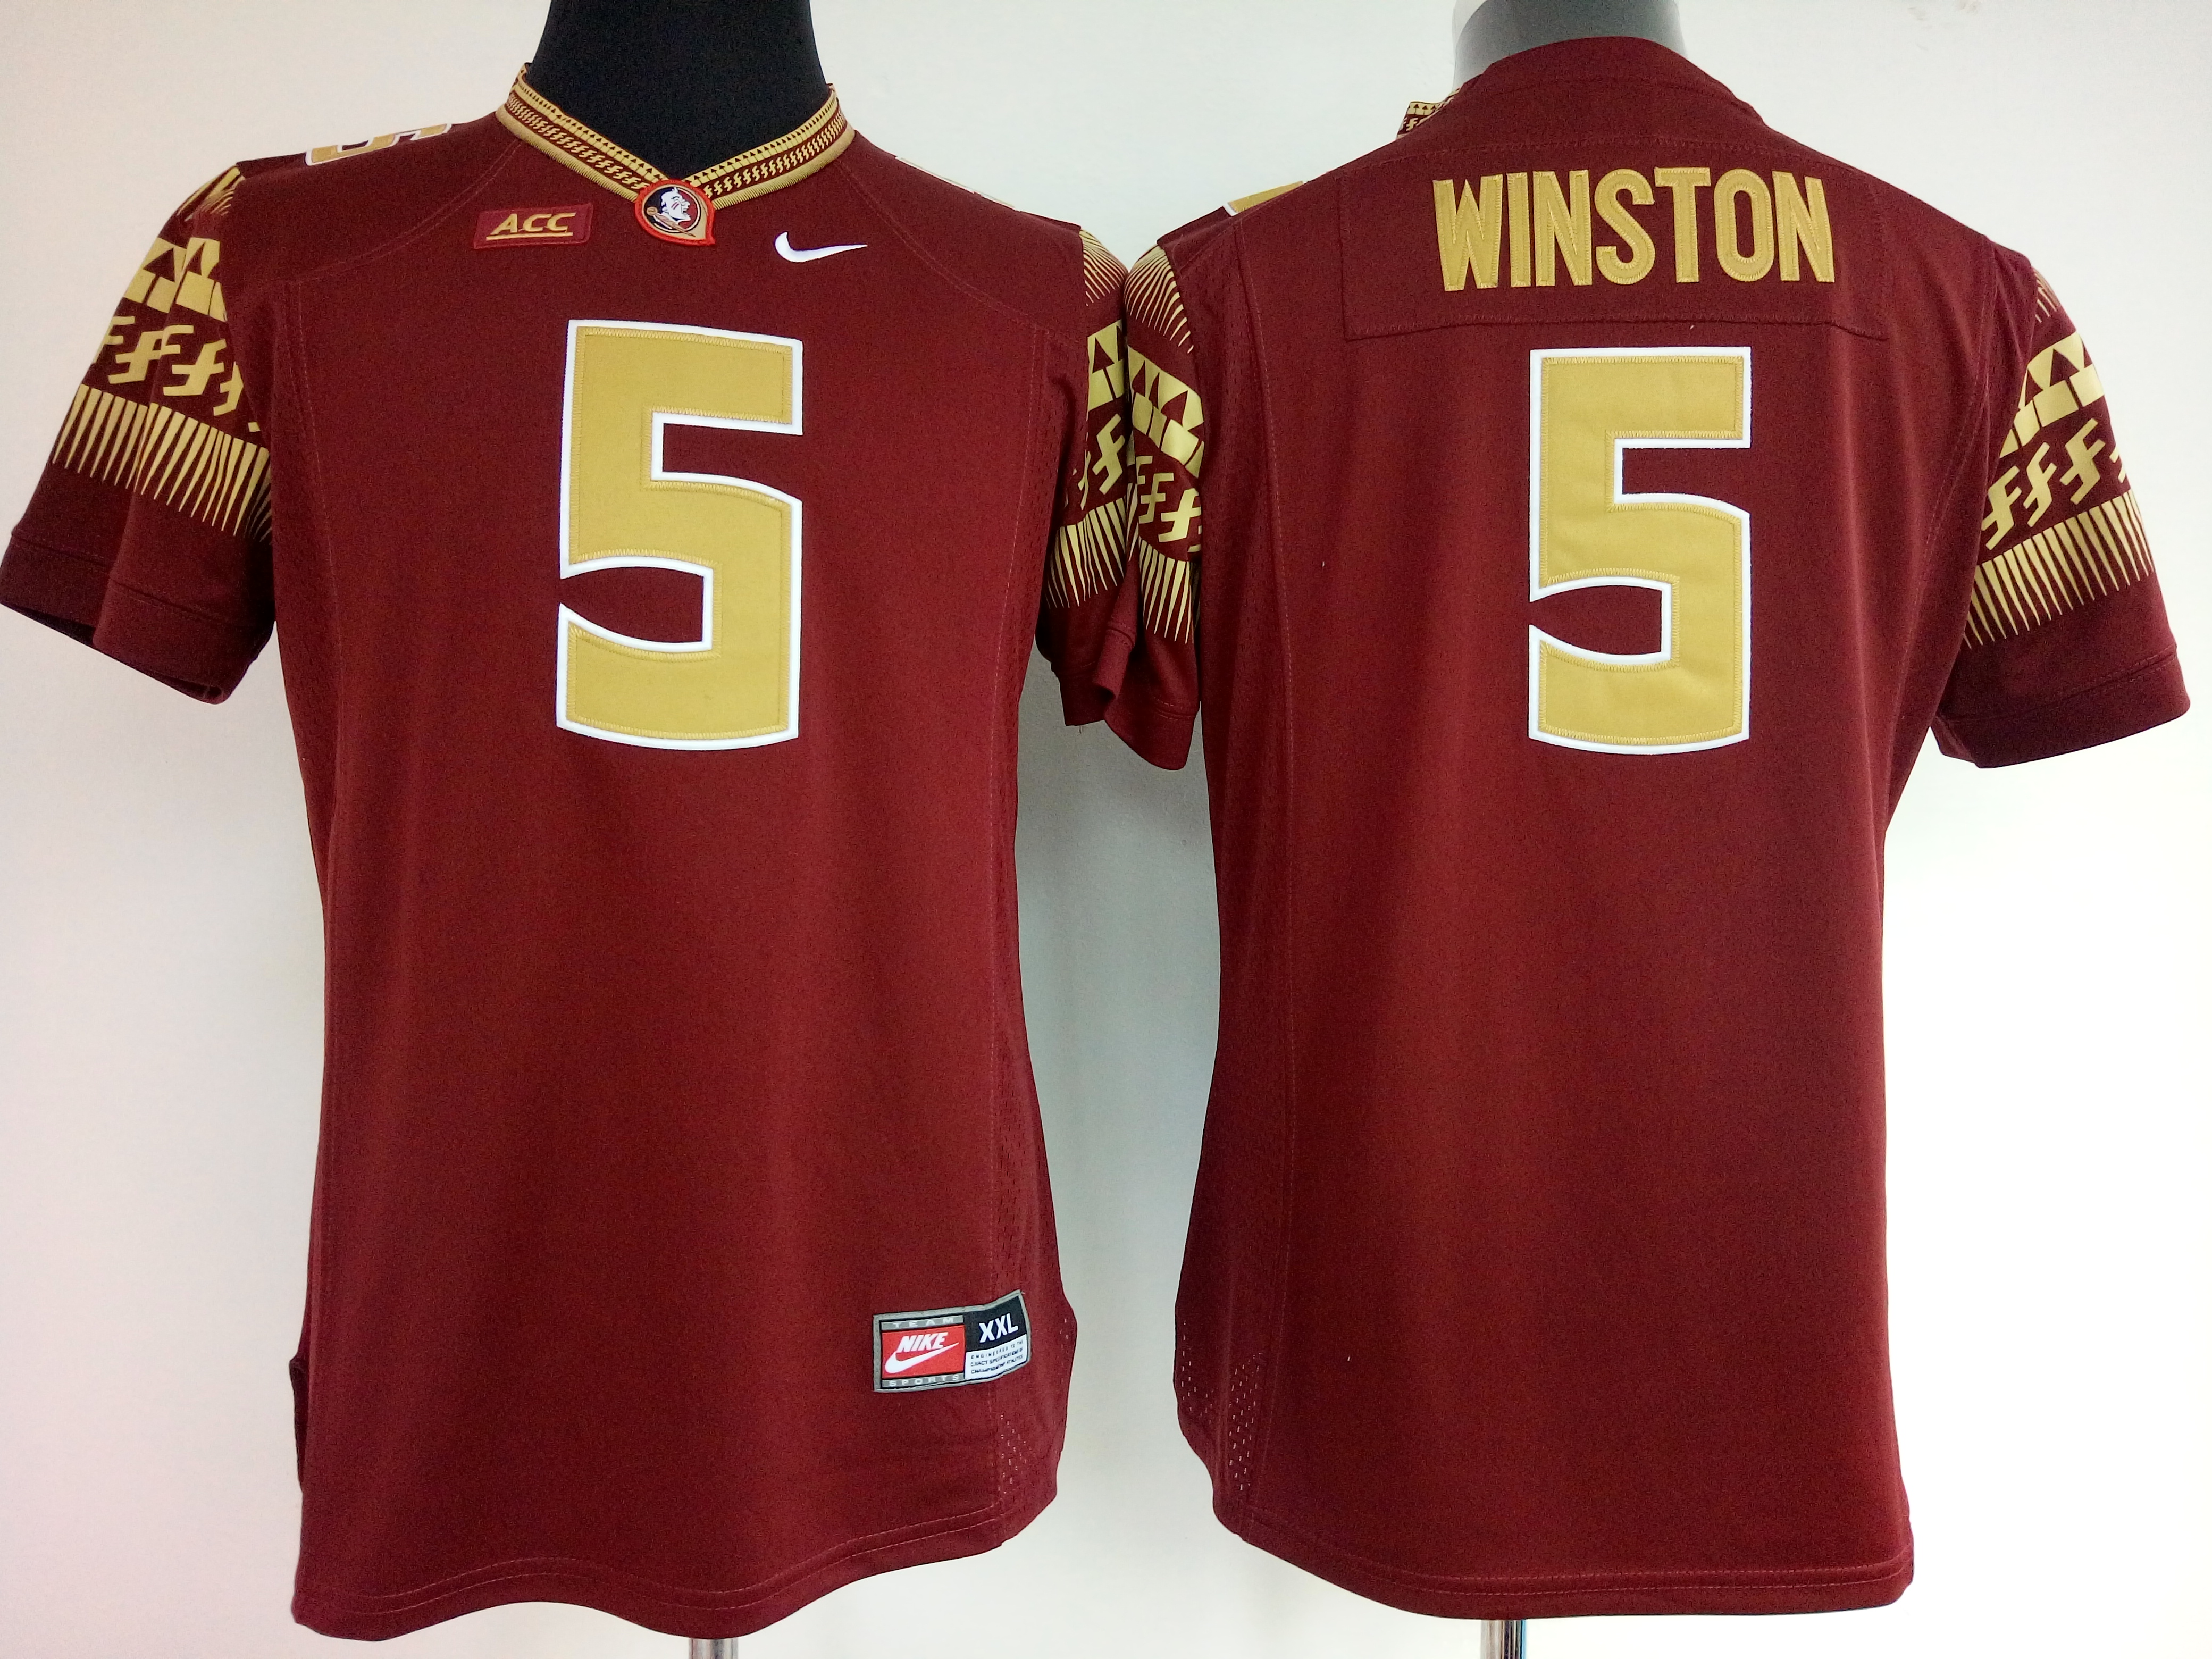 NCAA Womens Florida State Seminoles Red 5 Winston jerseys